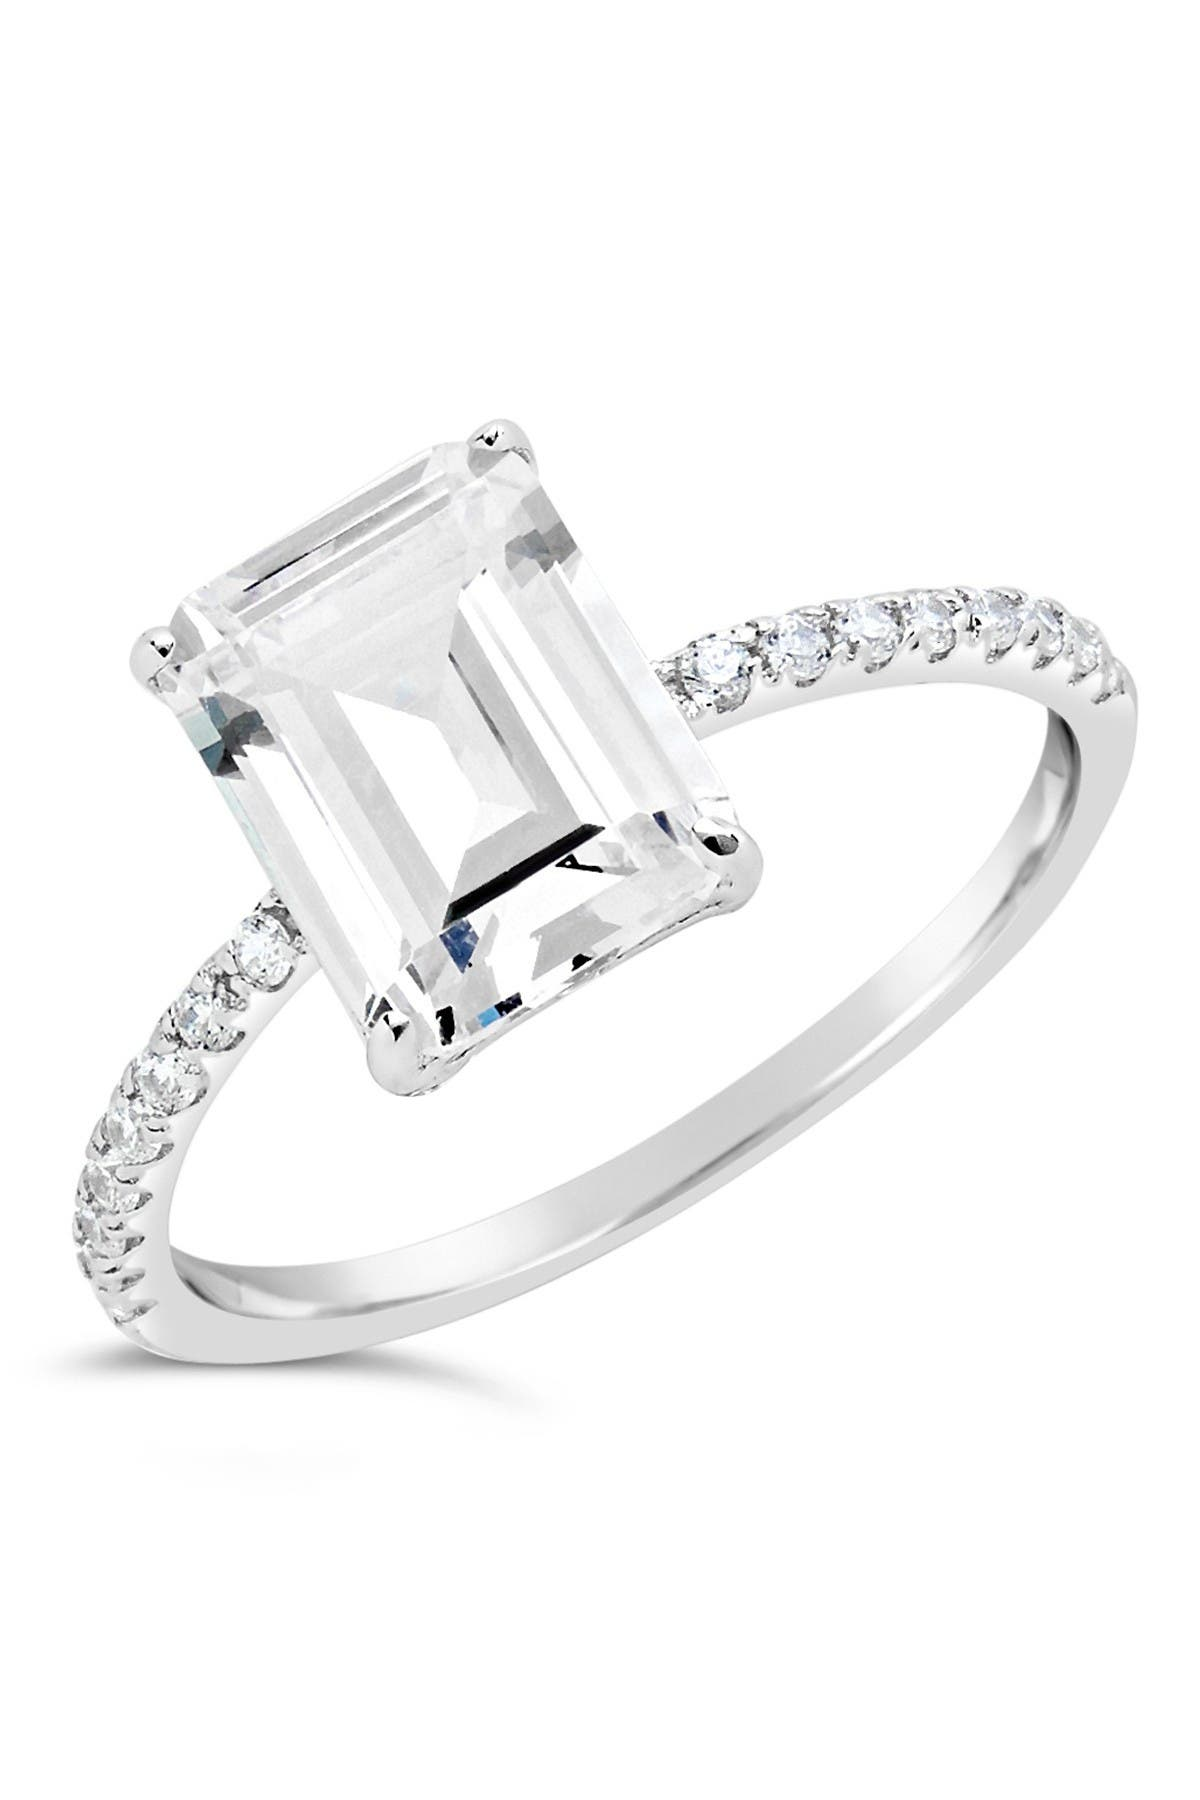 Image of Sterling Forever Sterling Silver Emerald Cut CZ Ring